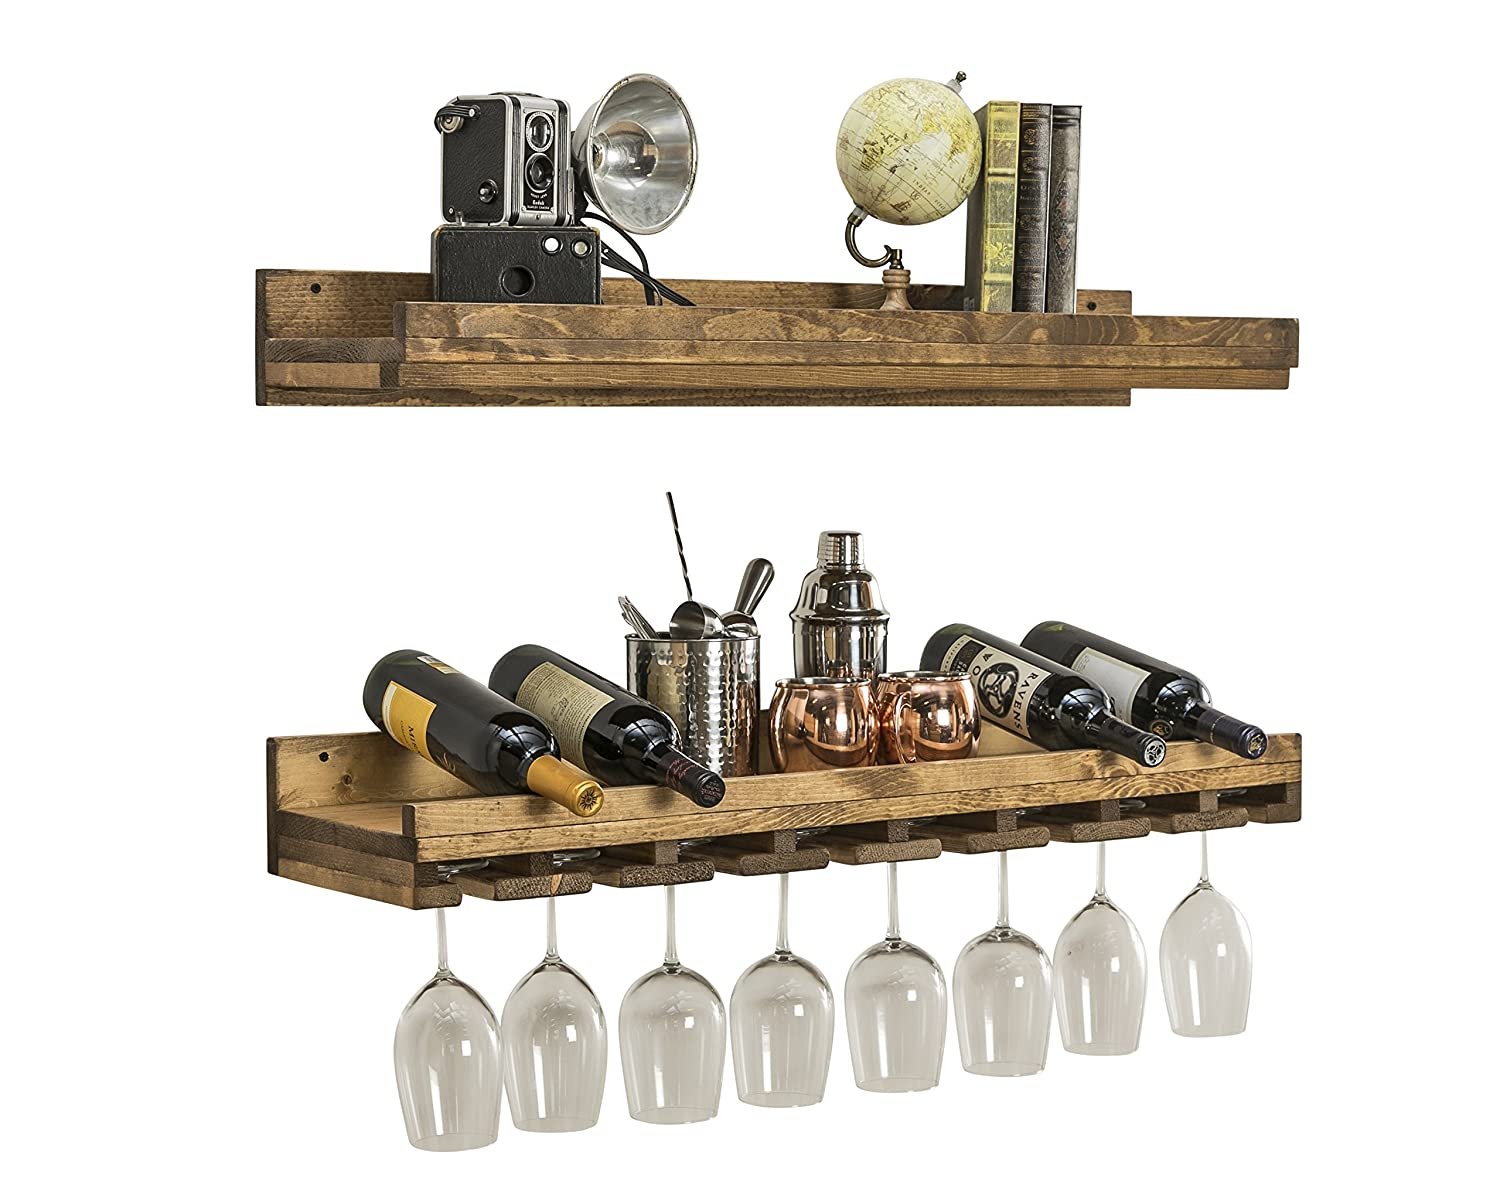 Floating Wine Shelf and Glass Rack Set (Wall Mounted), Rustic Pine Wood Handmade by del Hutson Designs (6H x 24W x 10D, Dark Walnut) COMIN18JU068785